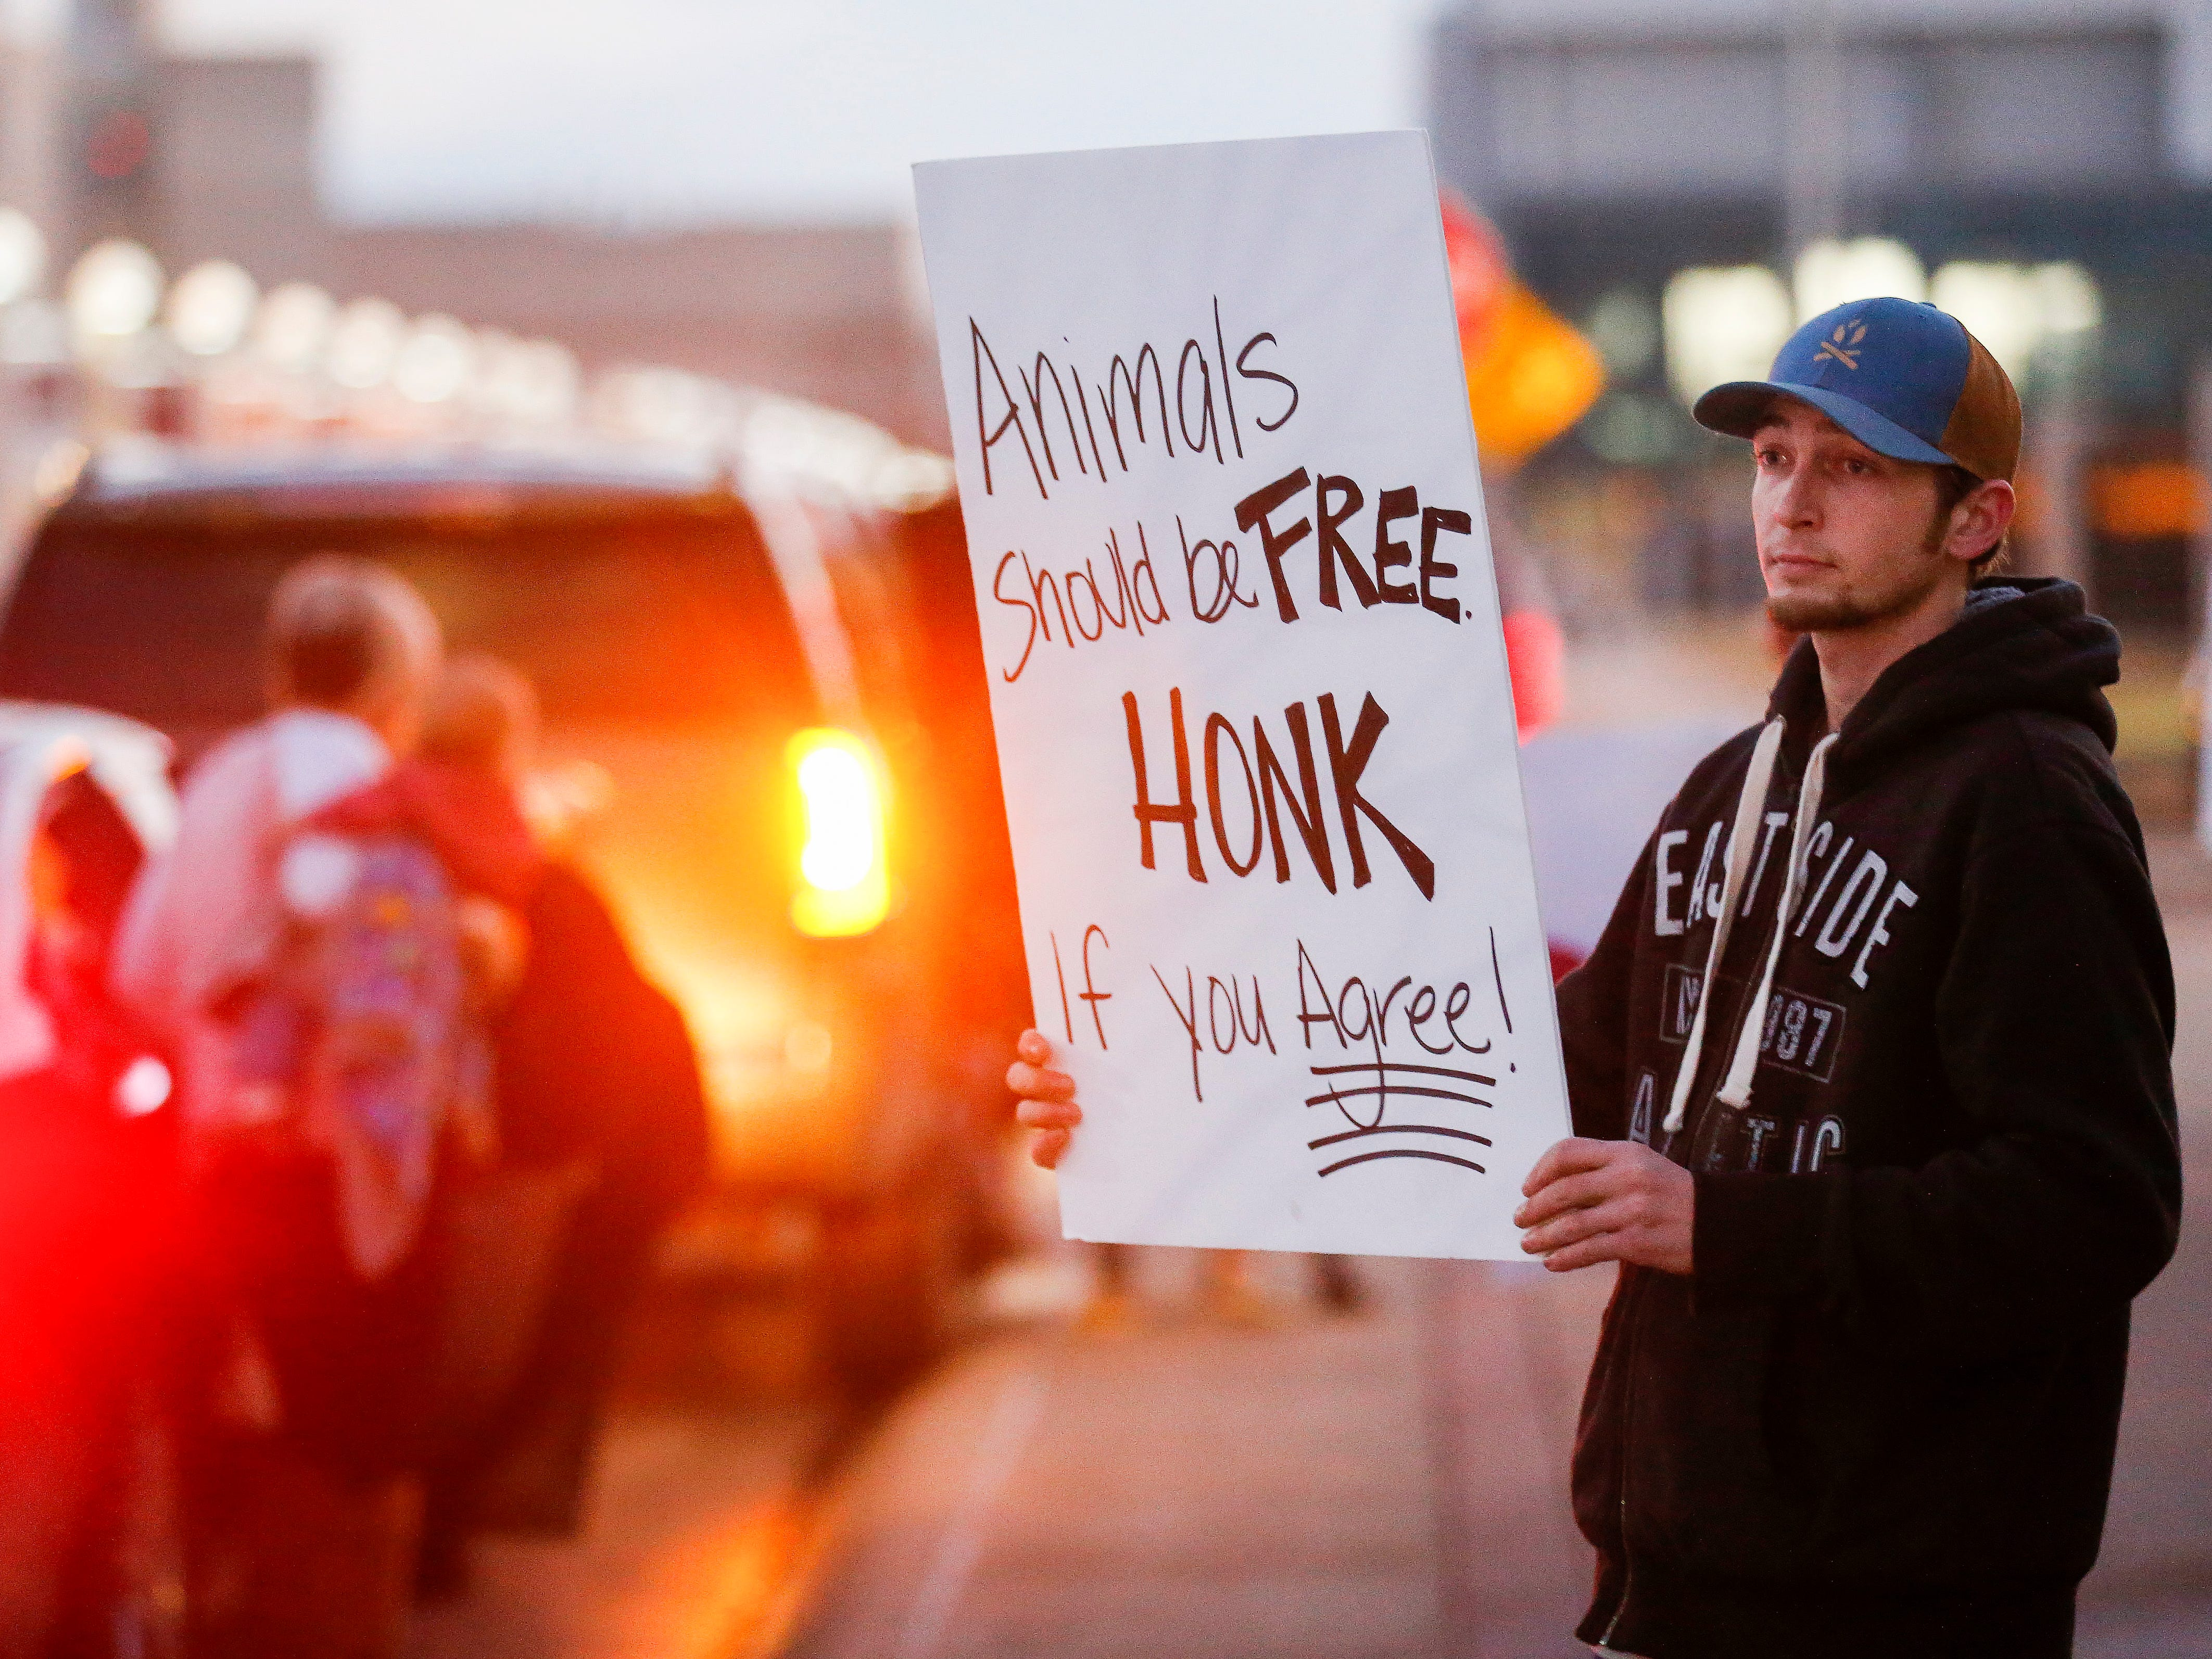 Animal rights activist Mike Sterling protests in front of JQH Arena against the use of animals in the Carden Circus on Friday, Feb. 1, 2019.